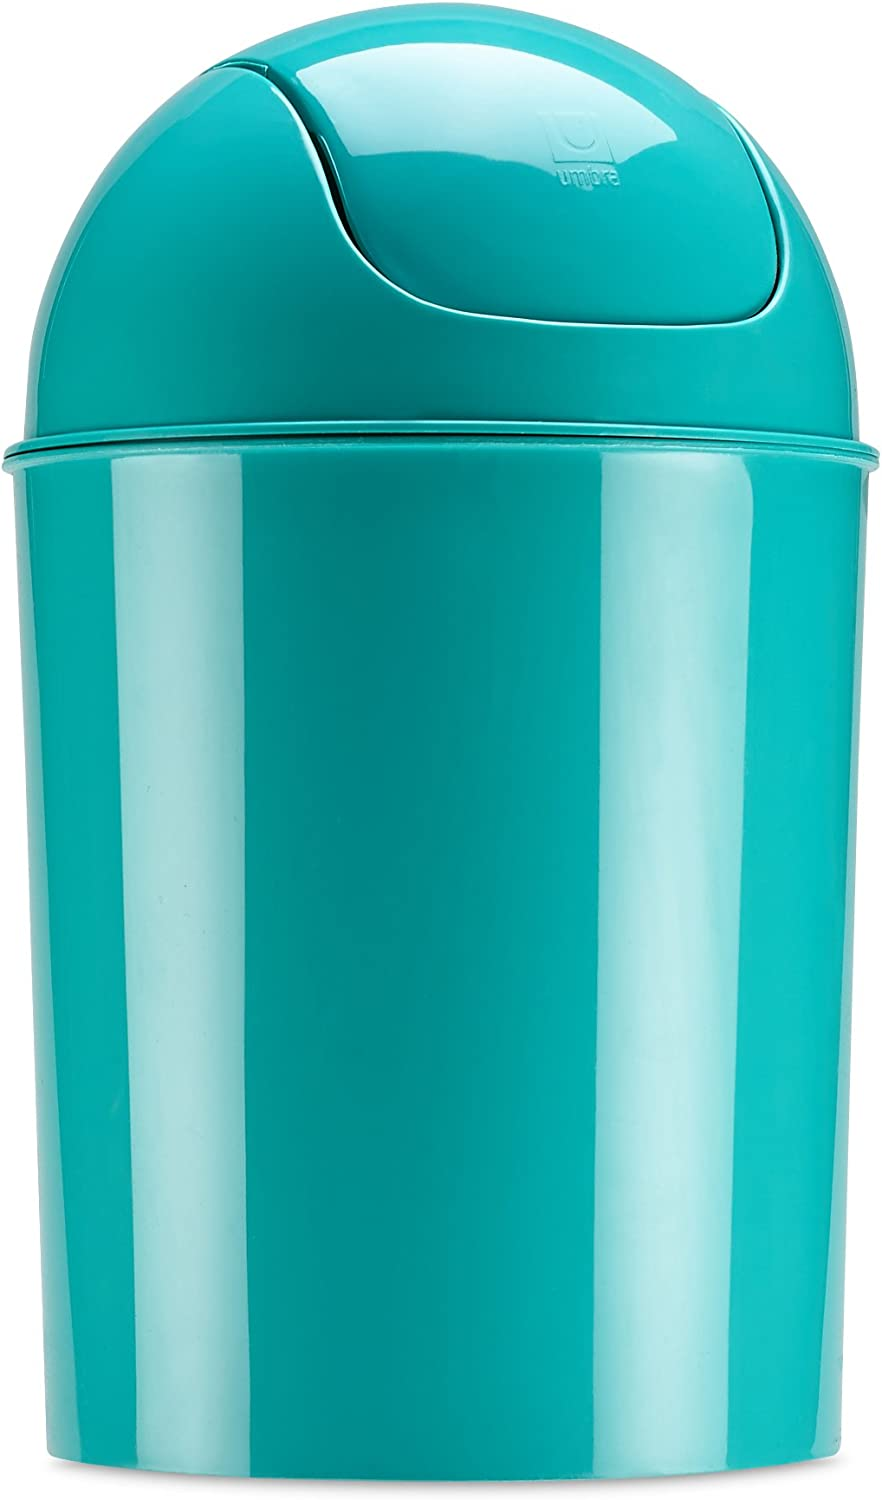 Umbra Mini Waste Can 5L with Swing Lid, Surf Blue